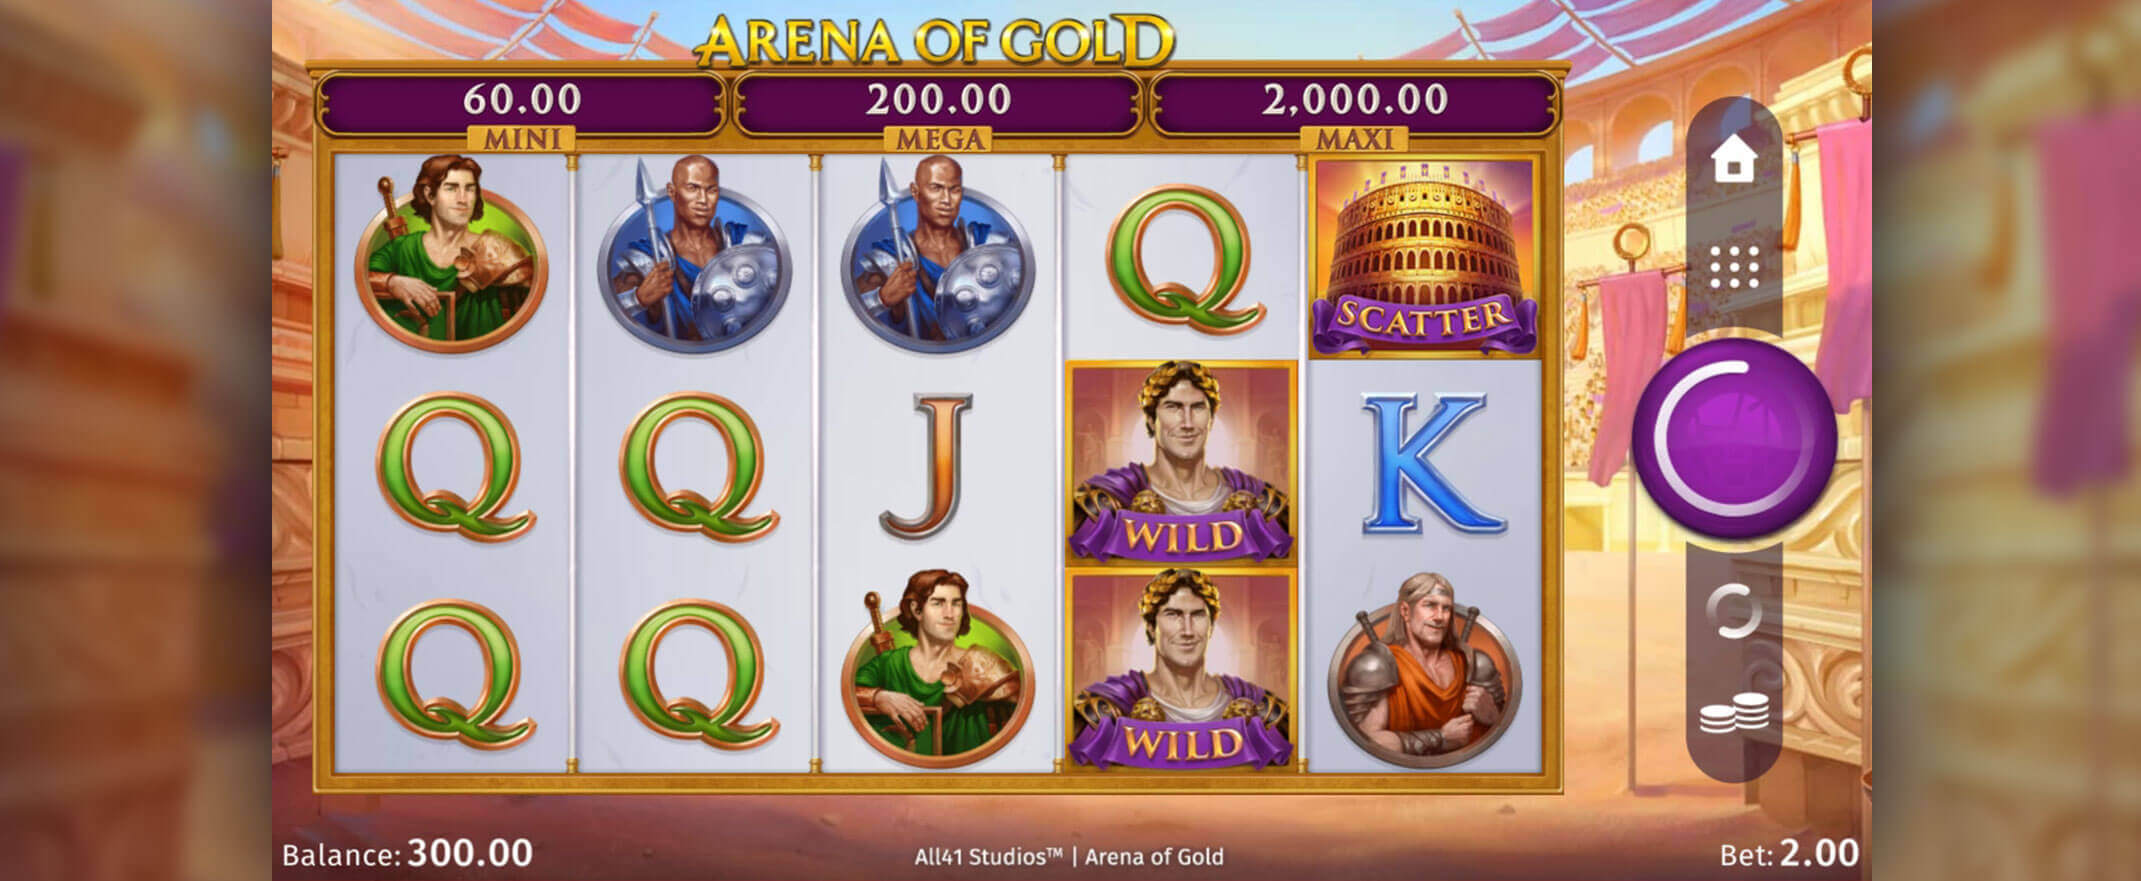 Arena of Gold Slot Gameplay